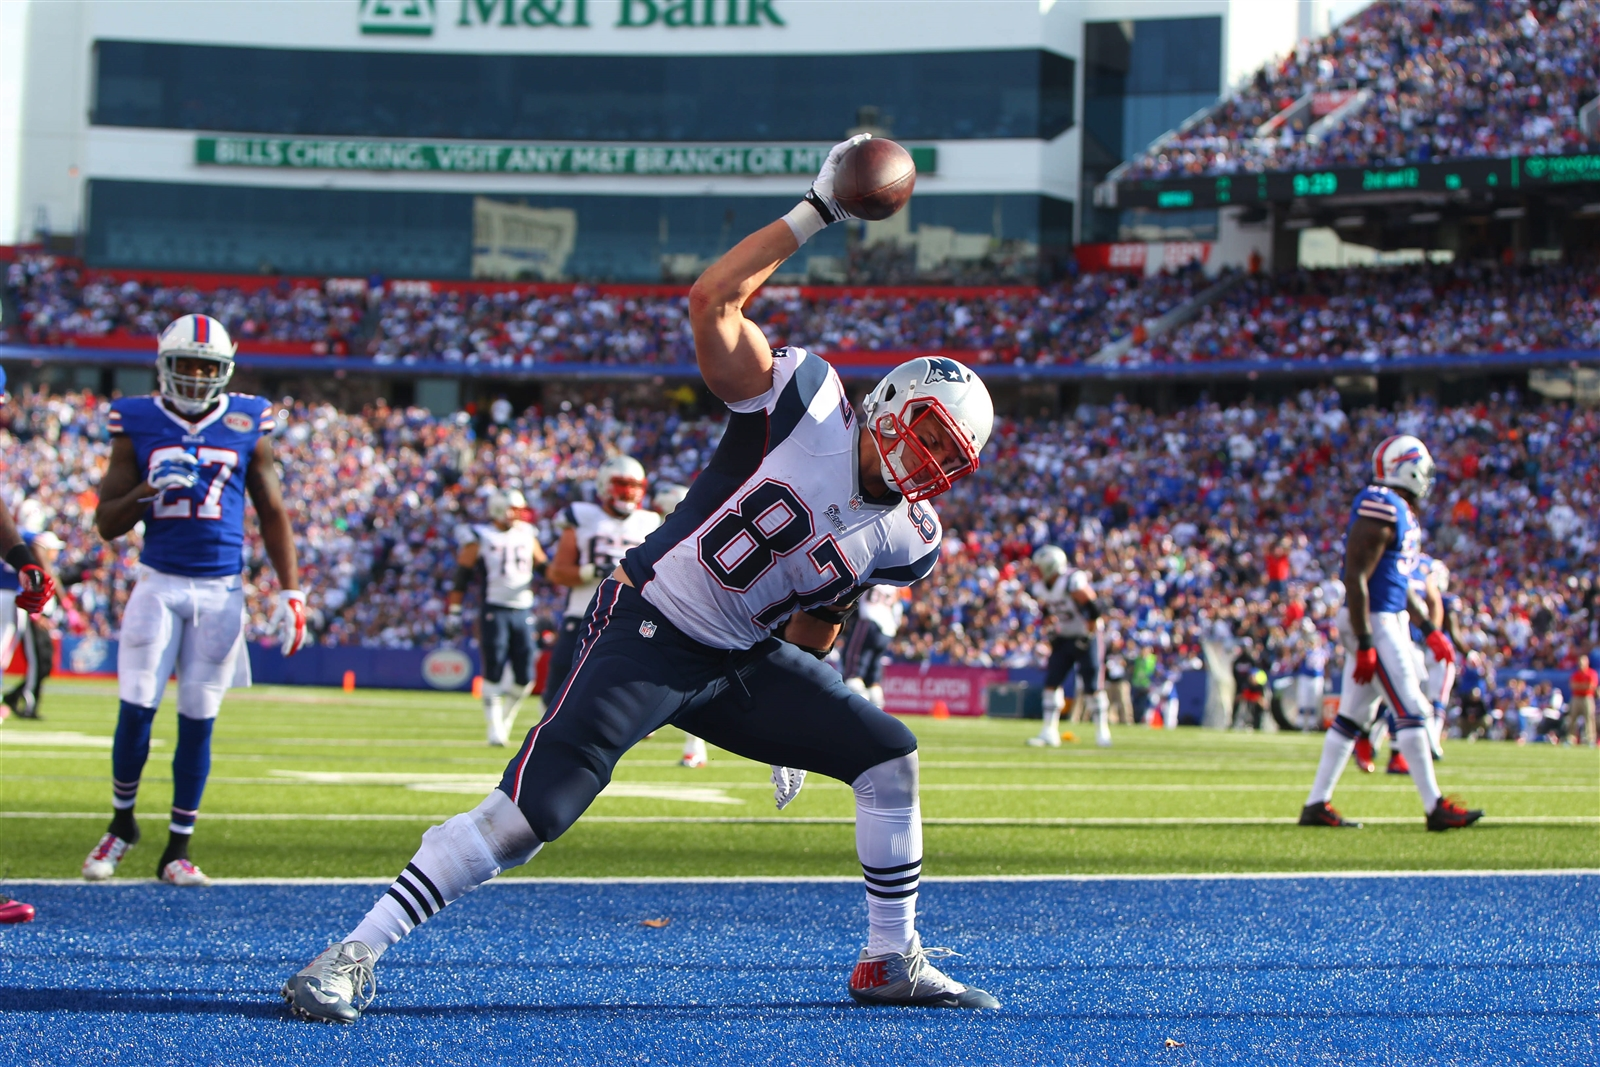 Rob Gronkowski scored his 69th touchdown on Sunday, the most in Patriots history.